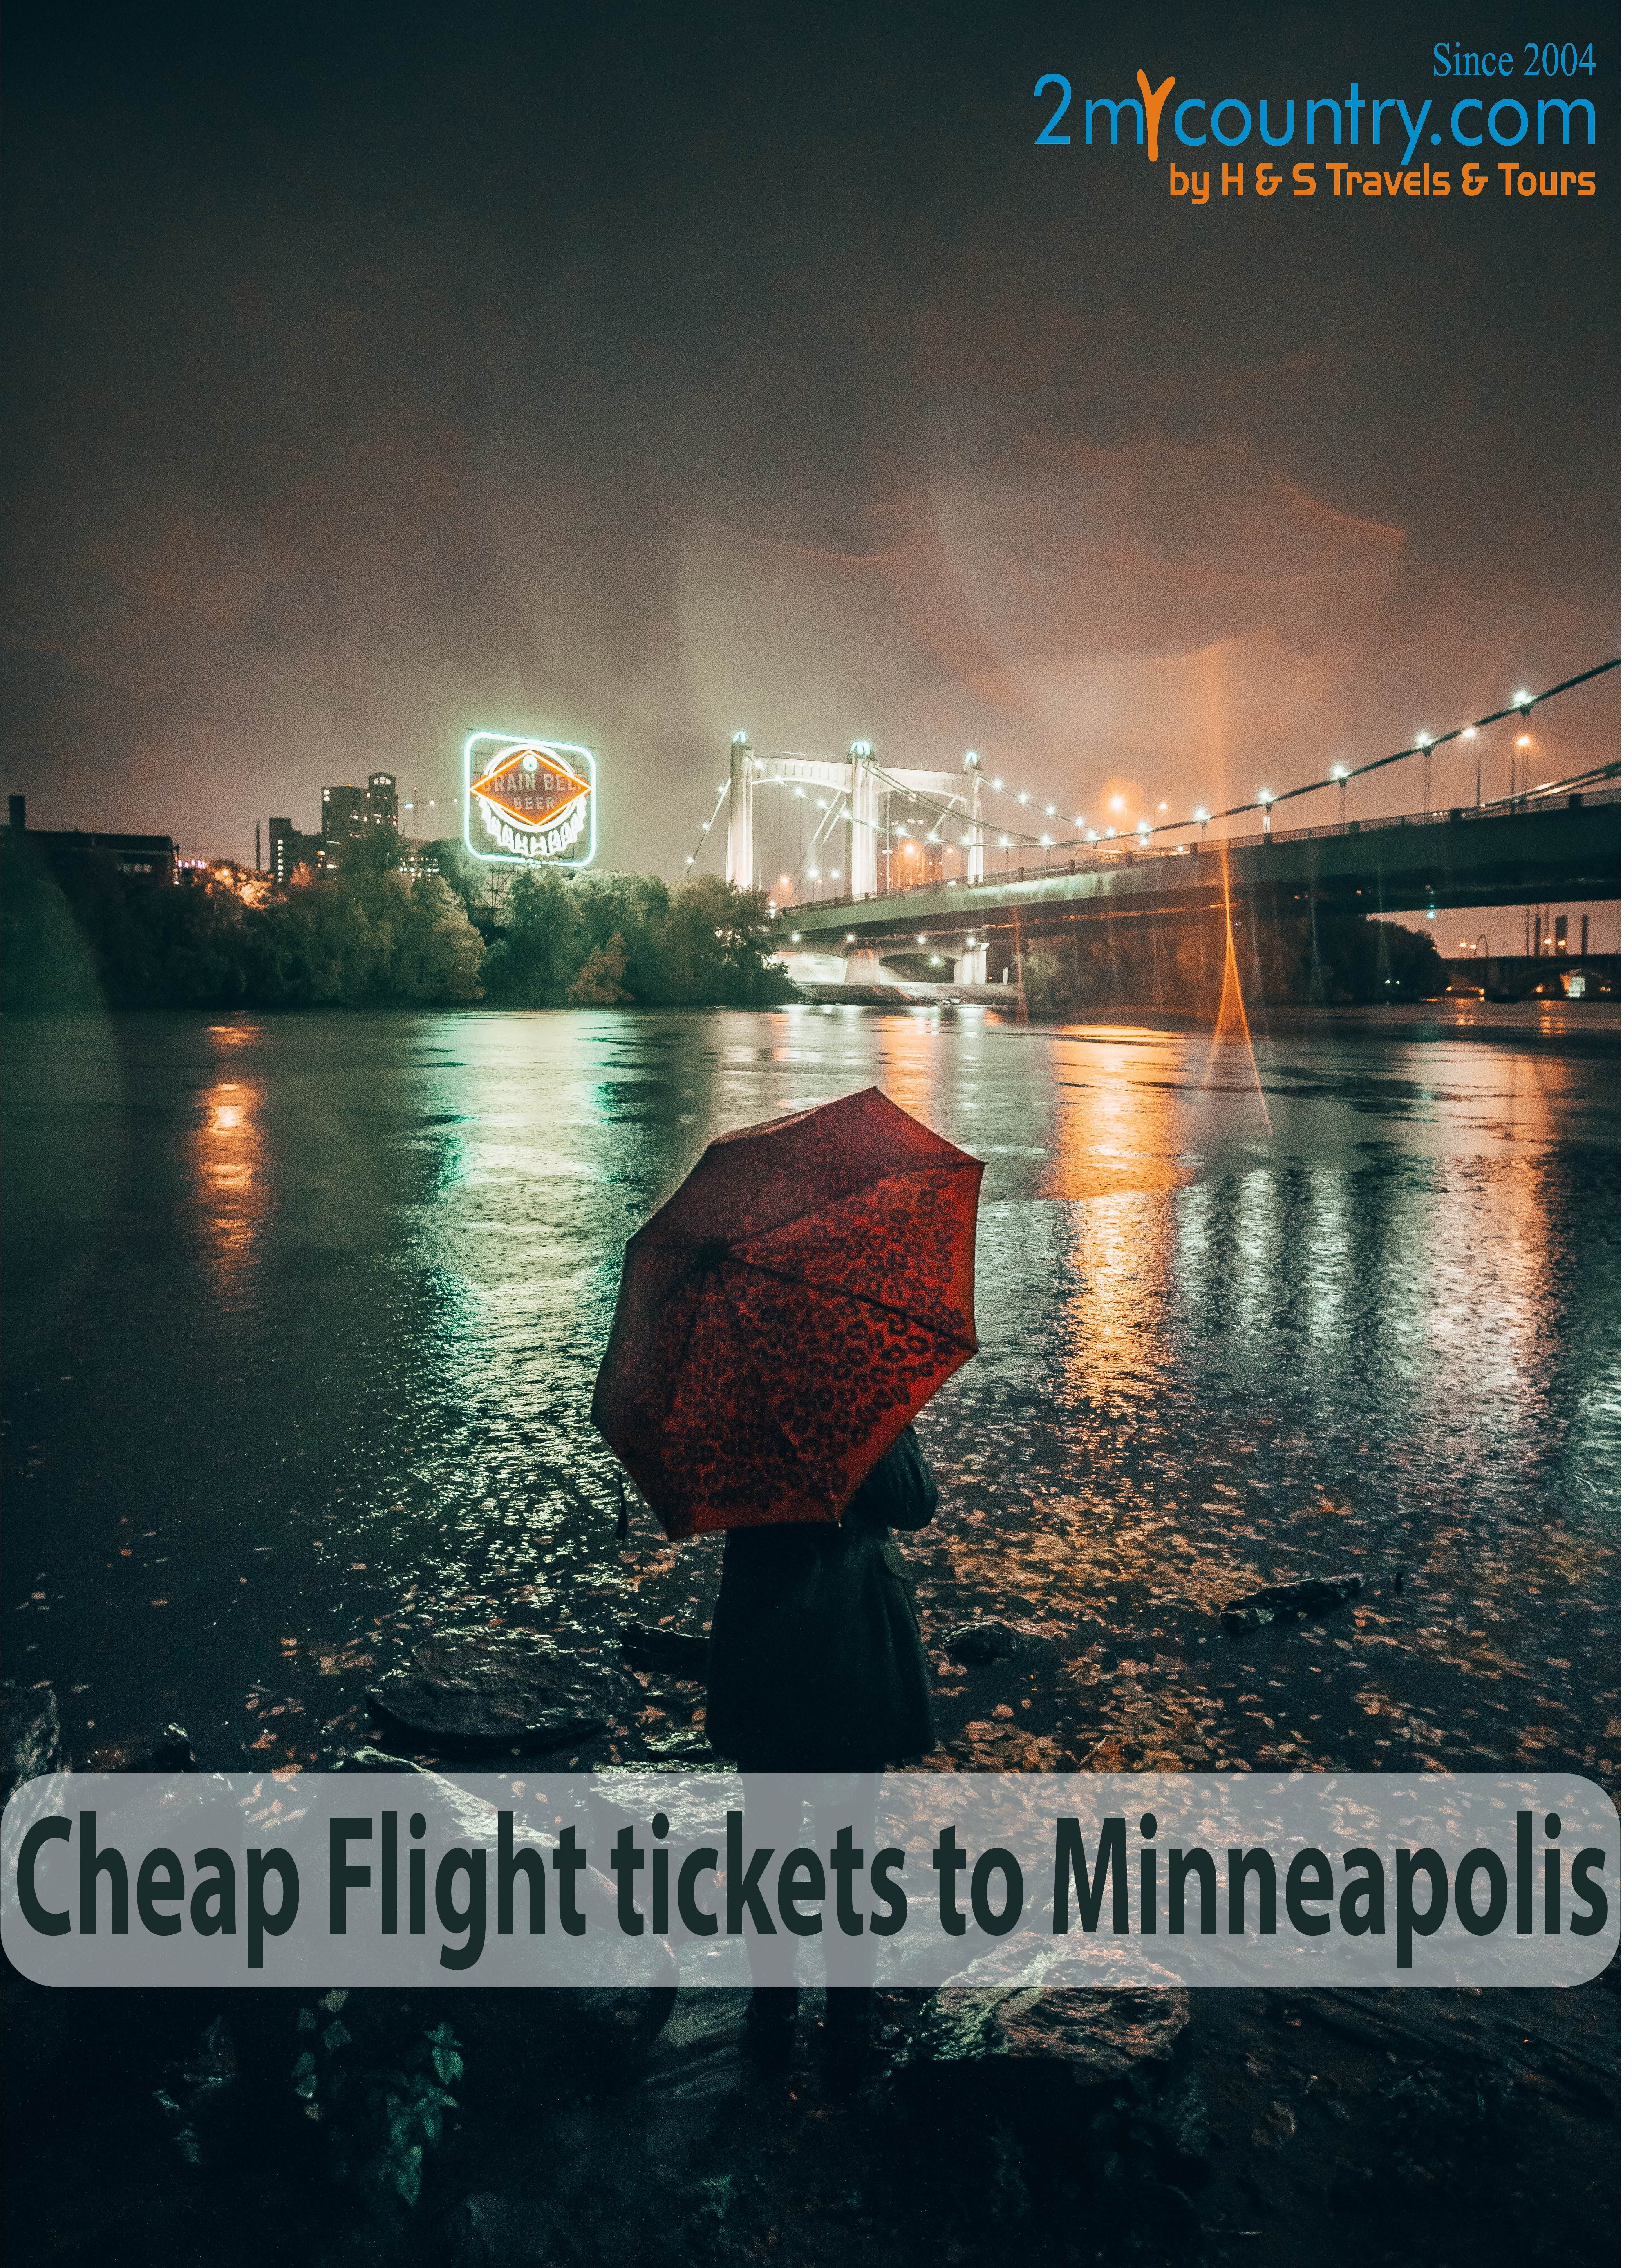 MINNEAPOLIS FLIGHTS - Book Cheapest air tickets to Minneapolis, United State at 2mycounty.com | Compare best flights deals & airline from major airline. SAVE NOW!  #cheaptickets #minneapolisflights #airfaredeals #2mycountry #cheapairfare #minneapolistickets #airfaredeals #travelpics #travelling #trip #nature #flightdeals #airlinedeals #airlinetickets #cheapairlinetickets